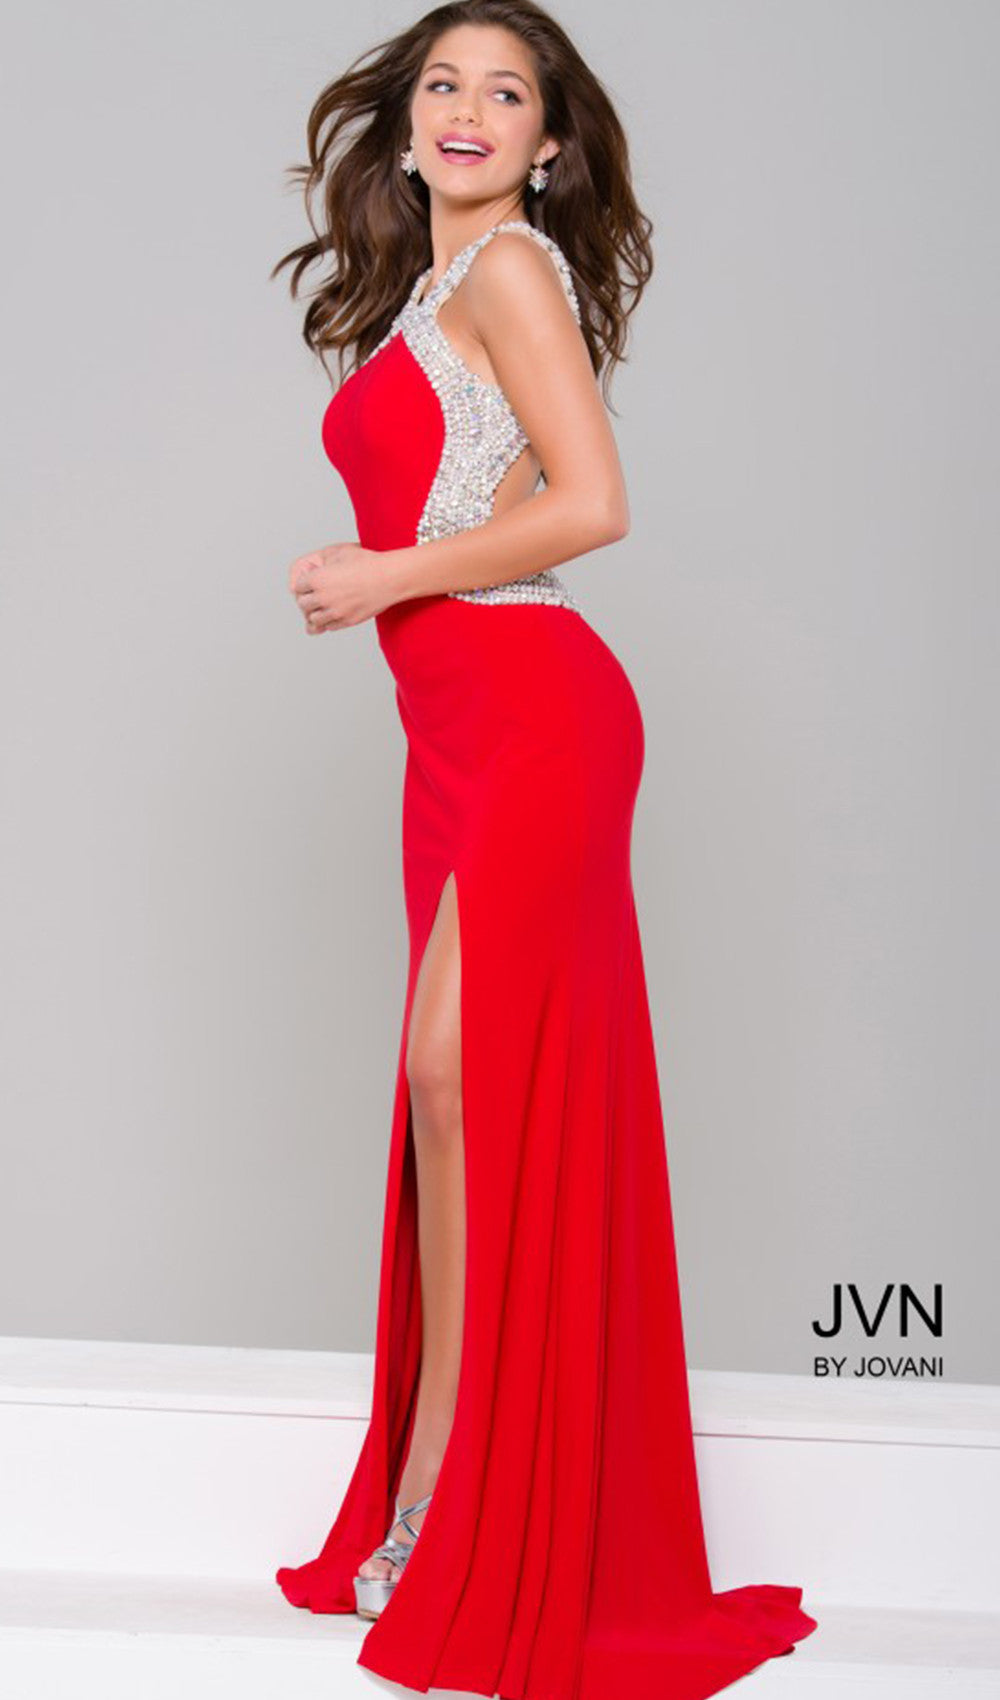 Embellished Red-Carpet-Ready Dress | Jovani - STYLE JVN47030 JOVANI- Schaffer's Bridal in Des Moines & Phoenix